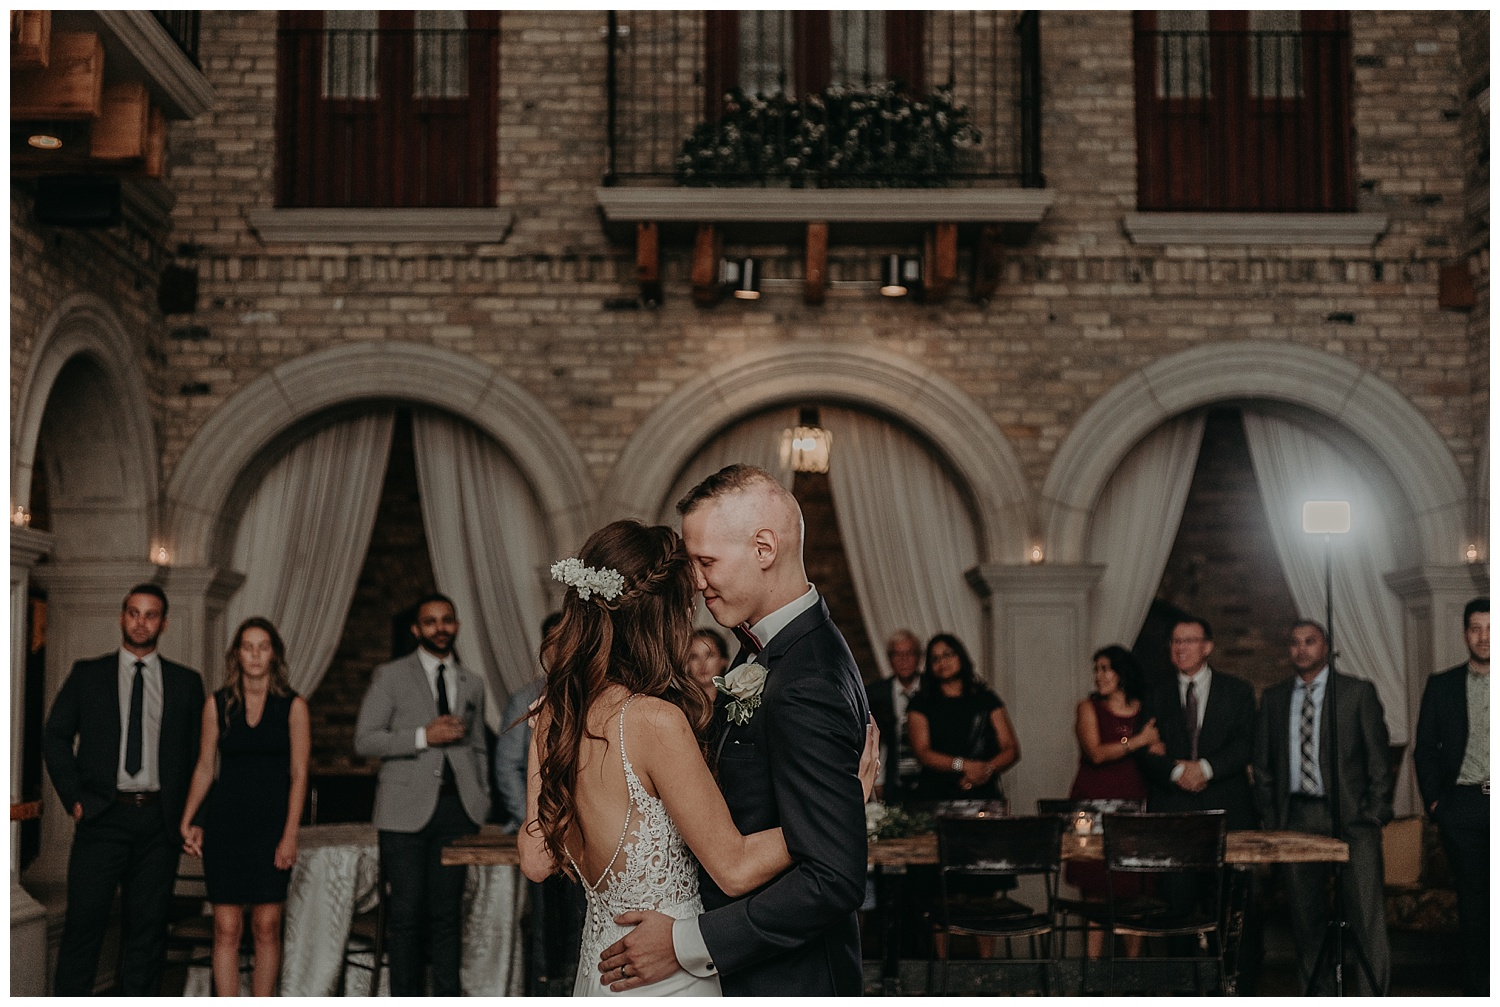 Katie Marie Photography | Hamilton Ontario Wedding Photographer | Kitchener Wedding Photographer | Hacienda Sarria Wedding | Cambridge Wedding_0247.jpg